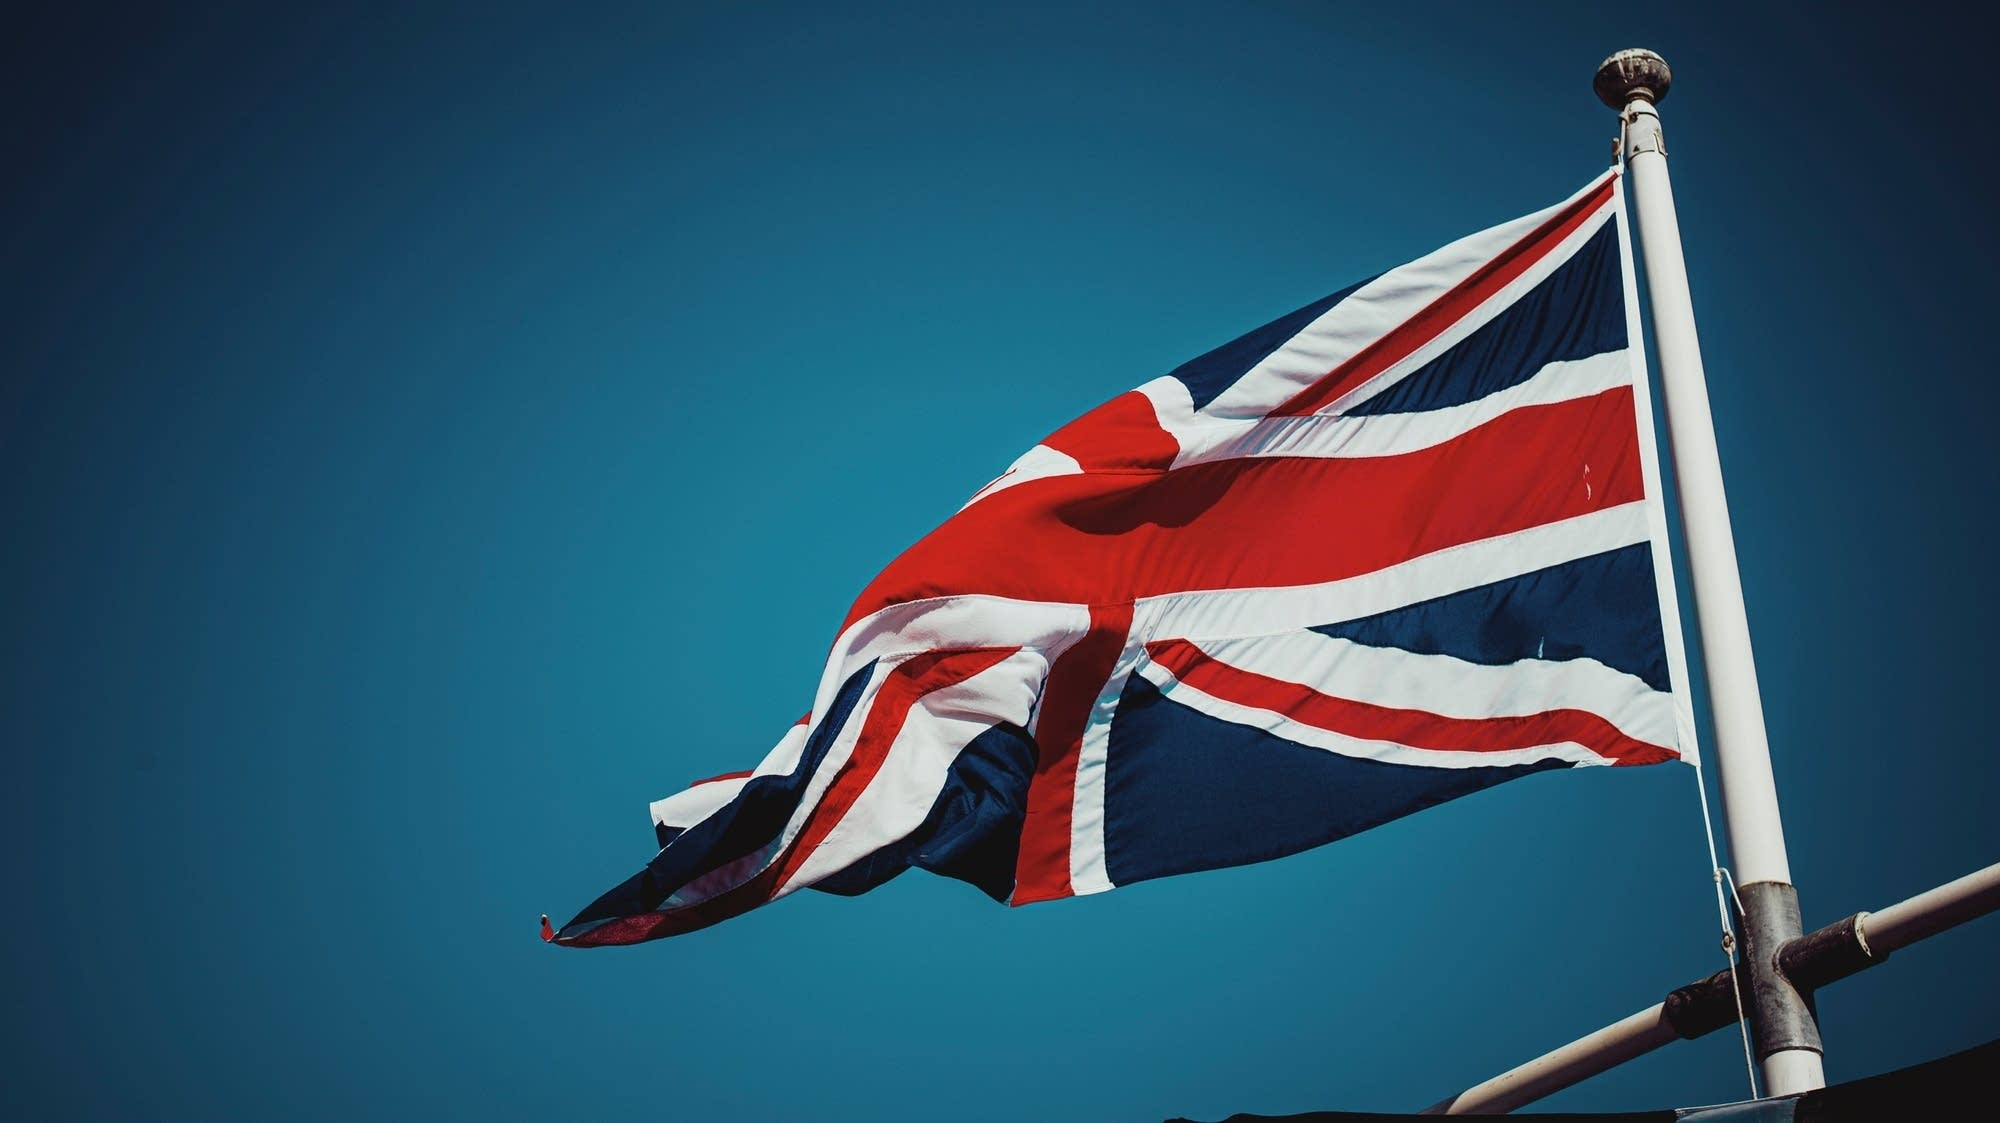 A British flag waves in the wind.